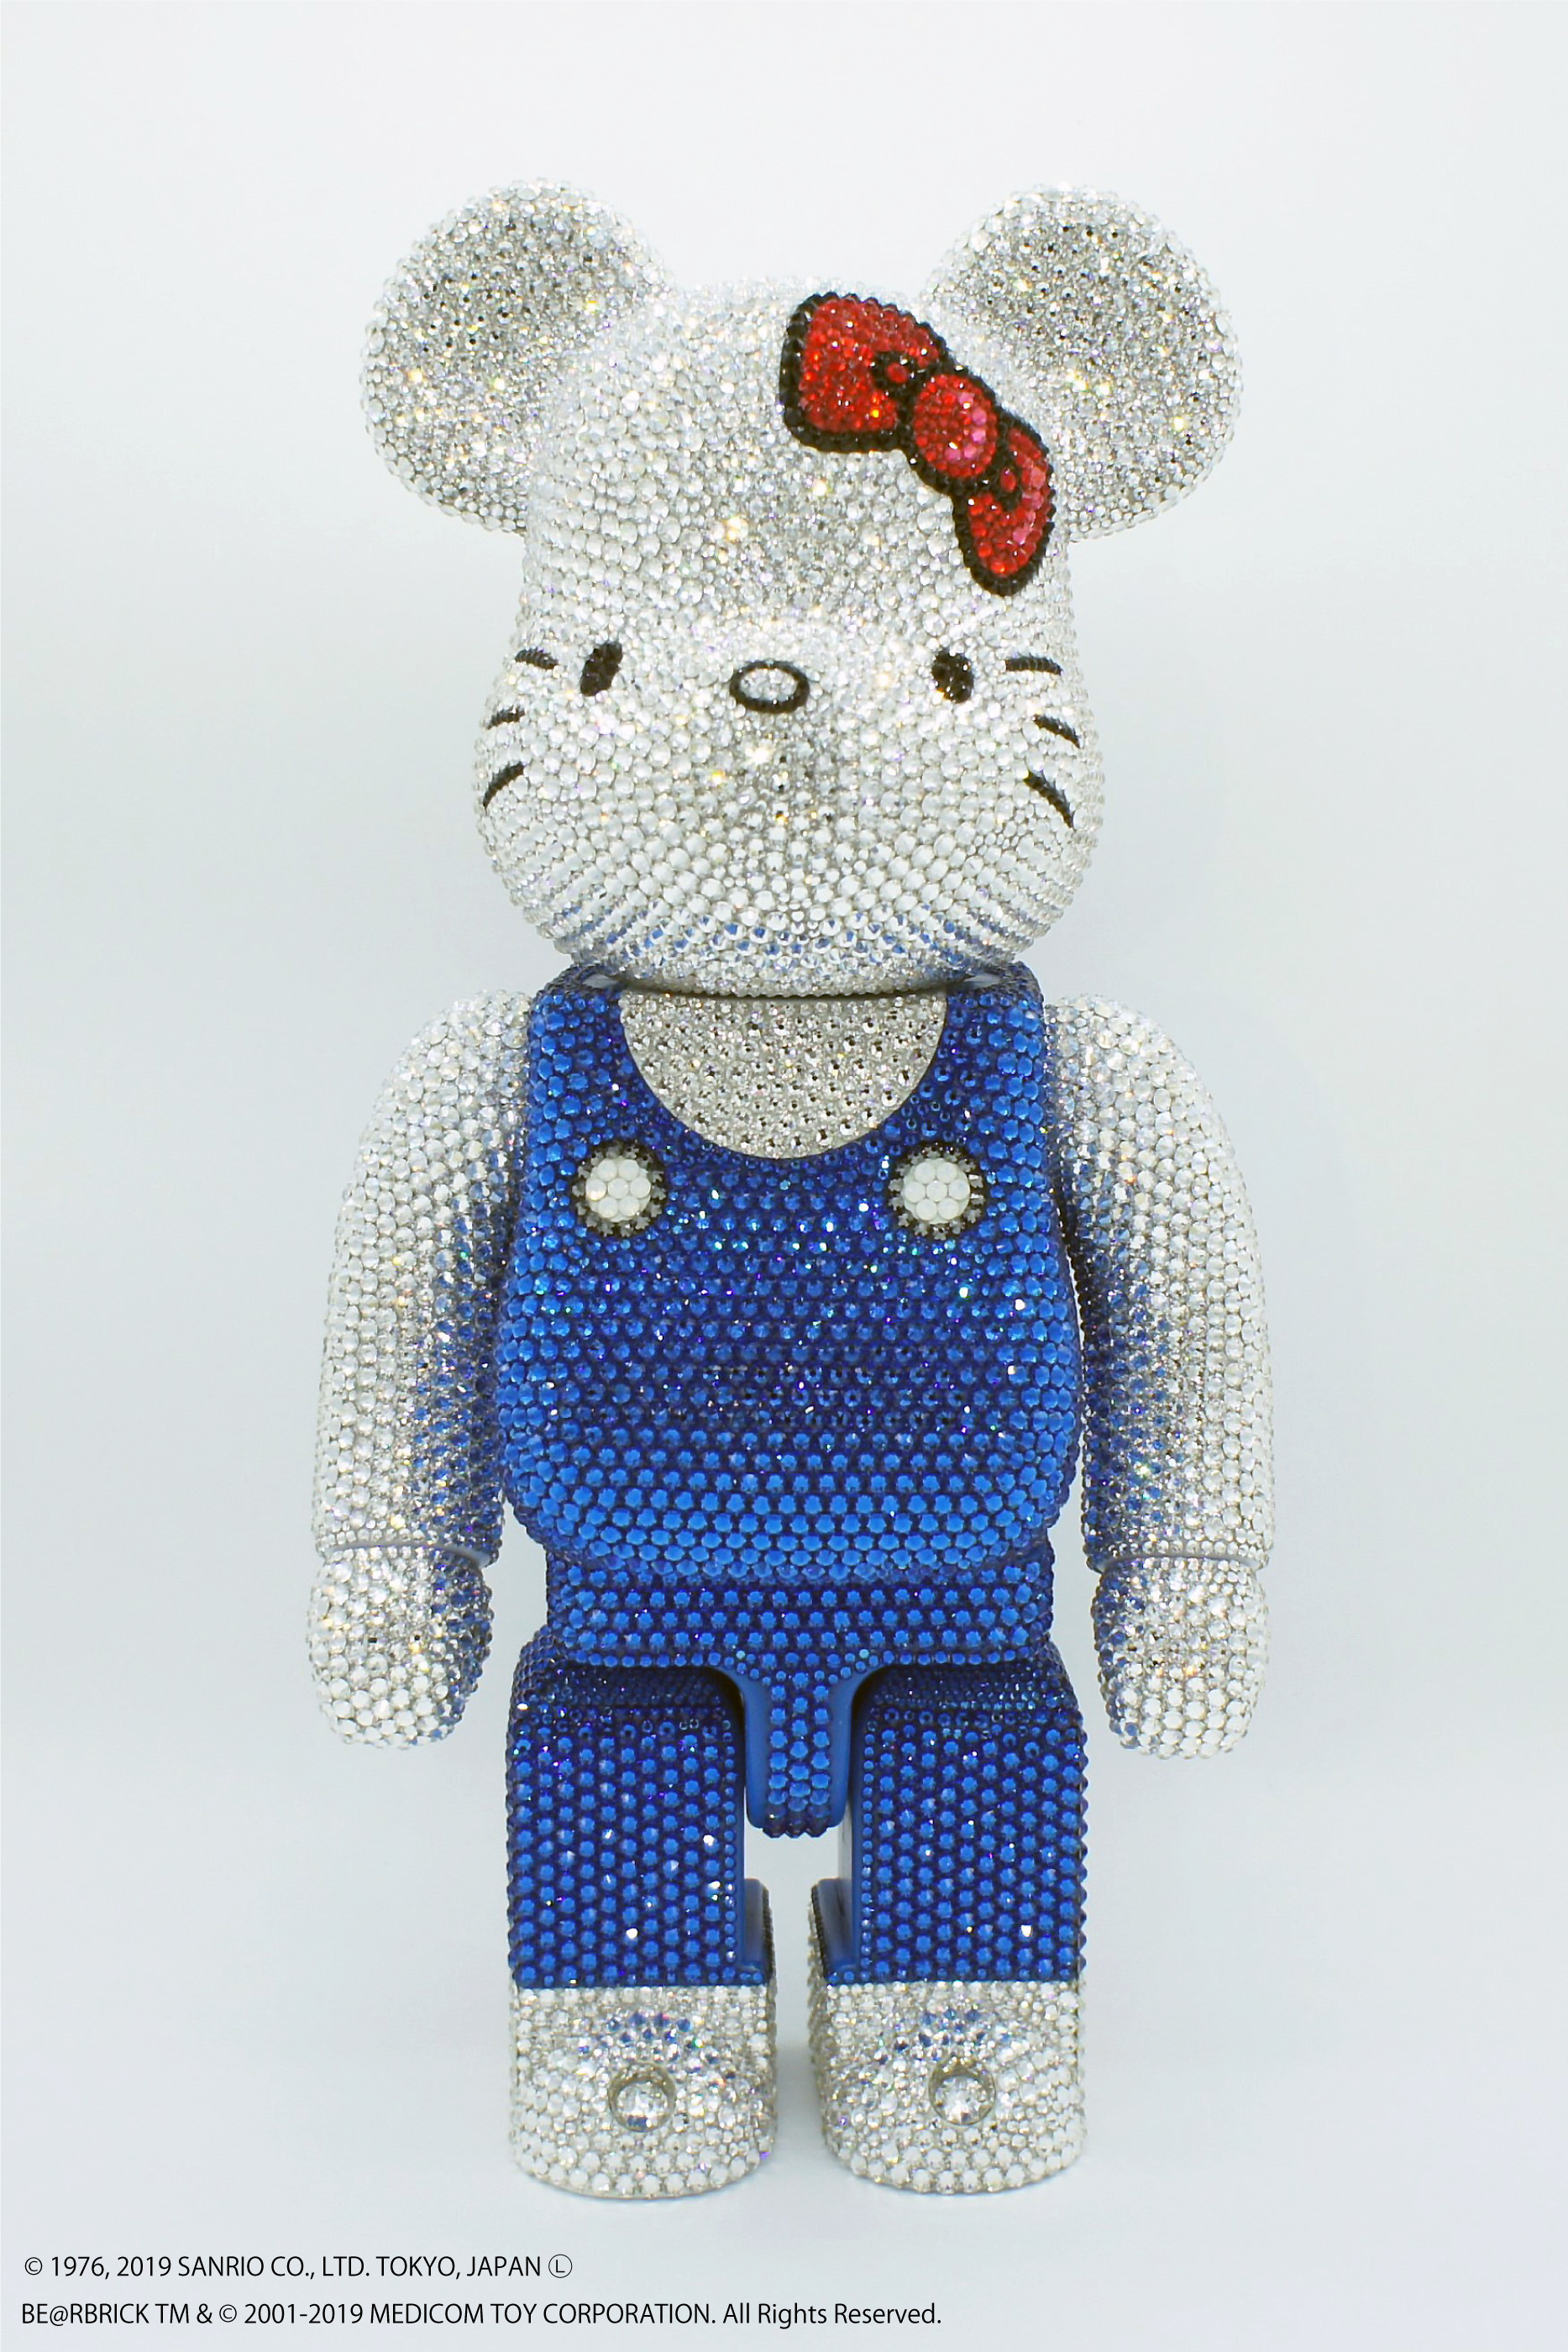 MEDICOM TOY CRYCTAL DECOLATE BE@RBRICK 400%